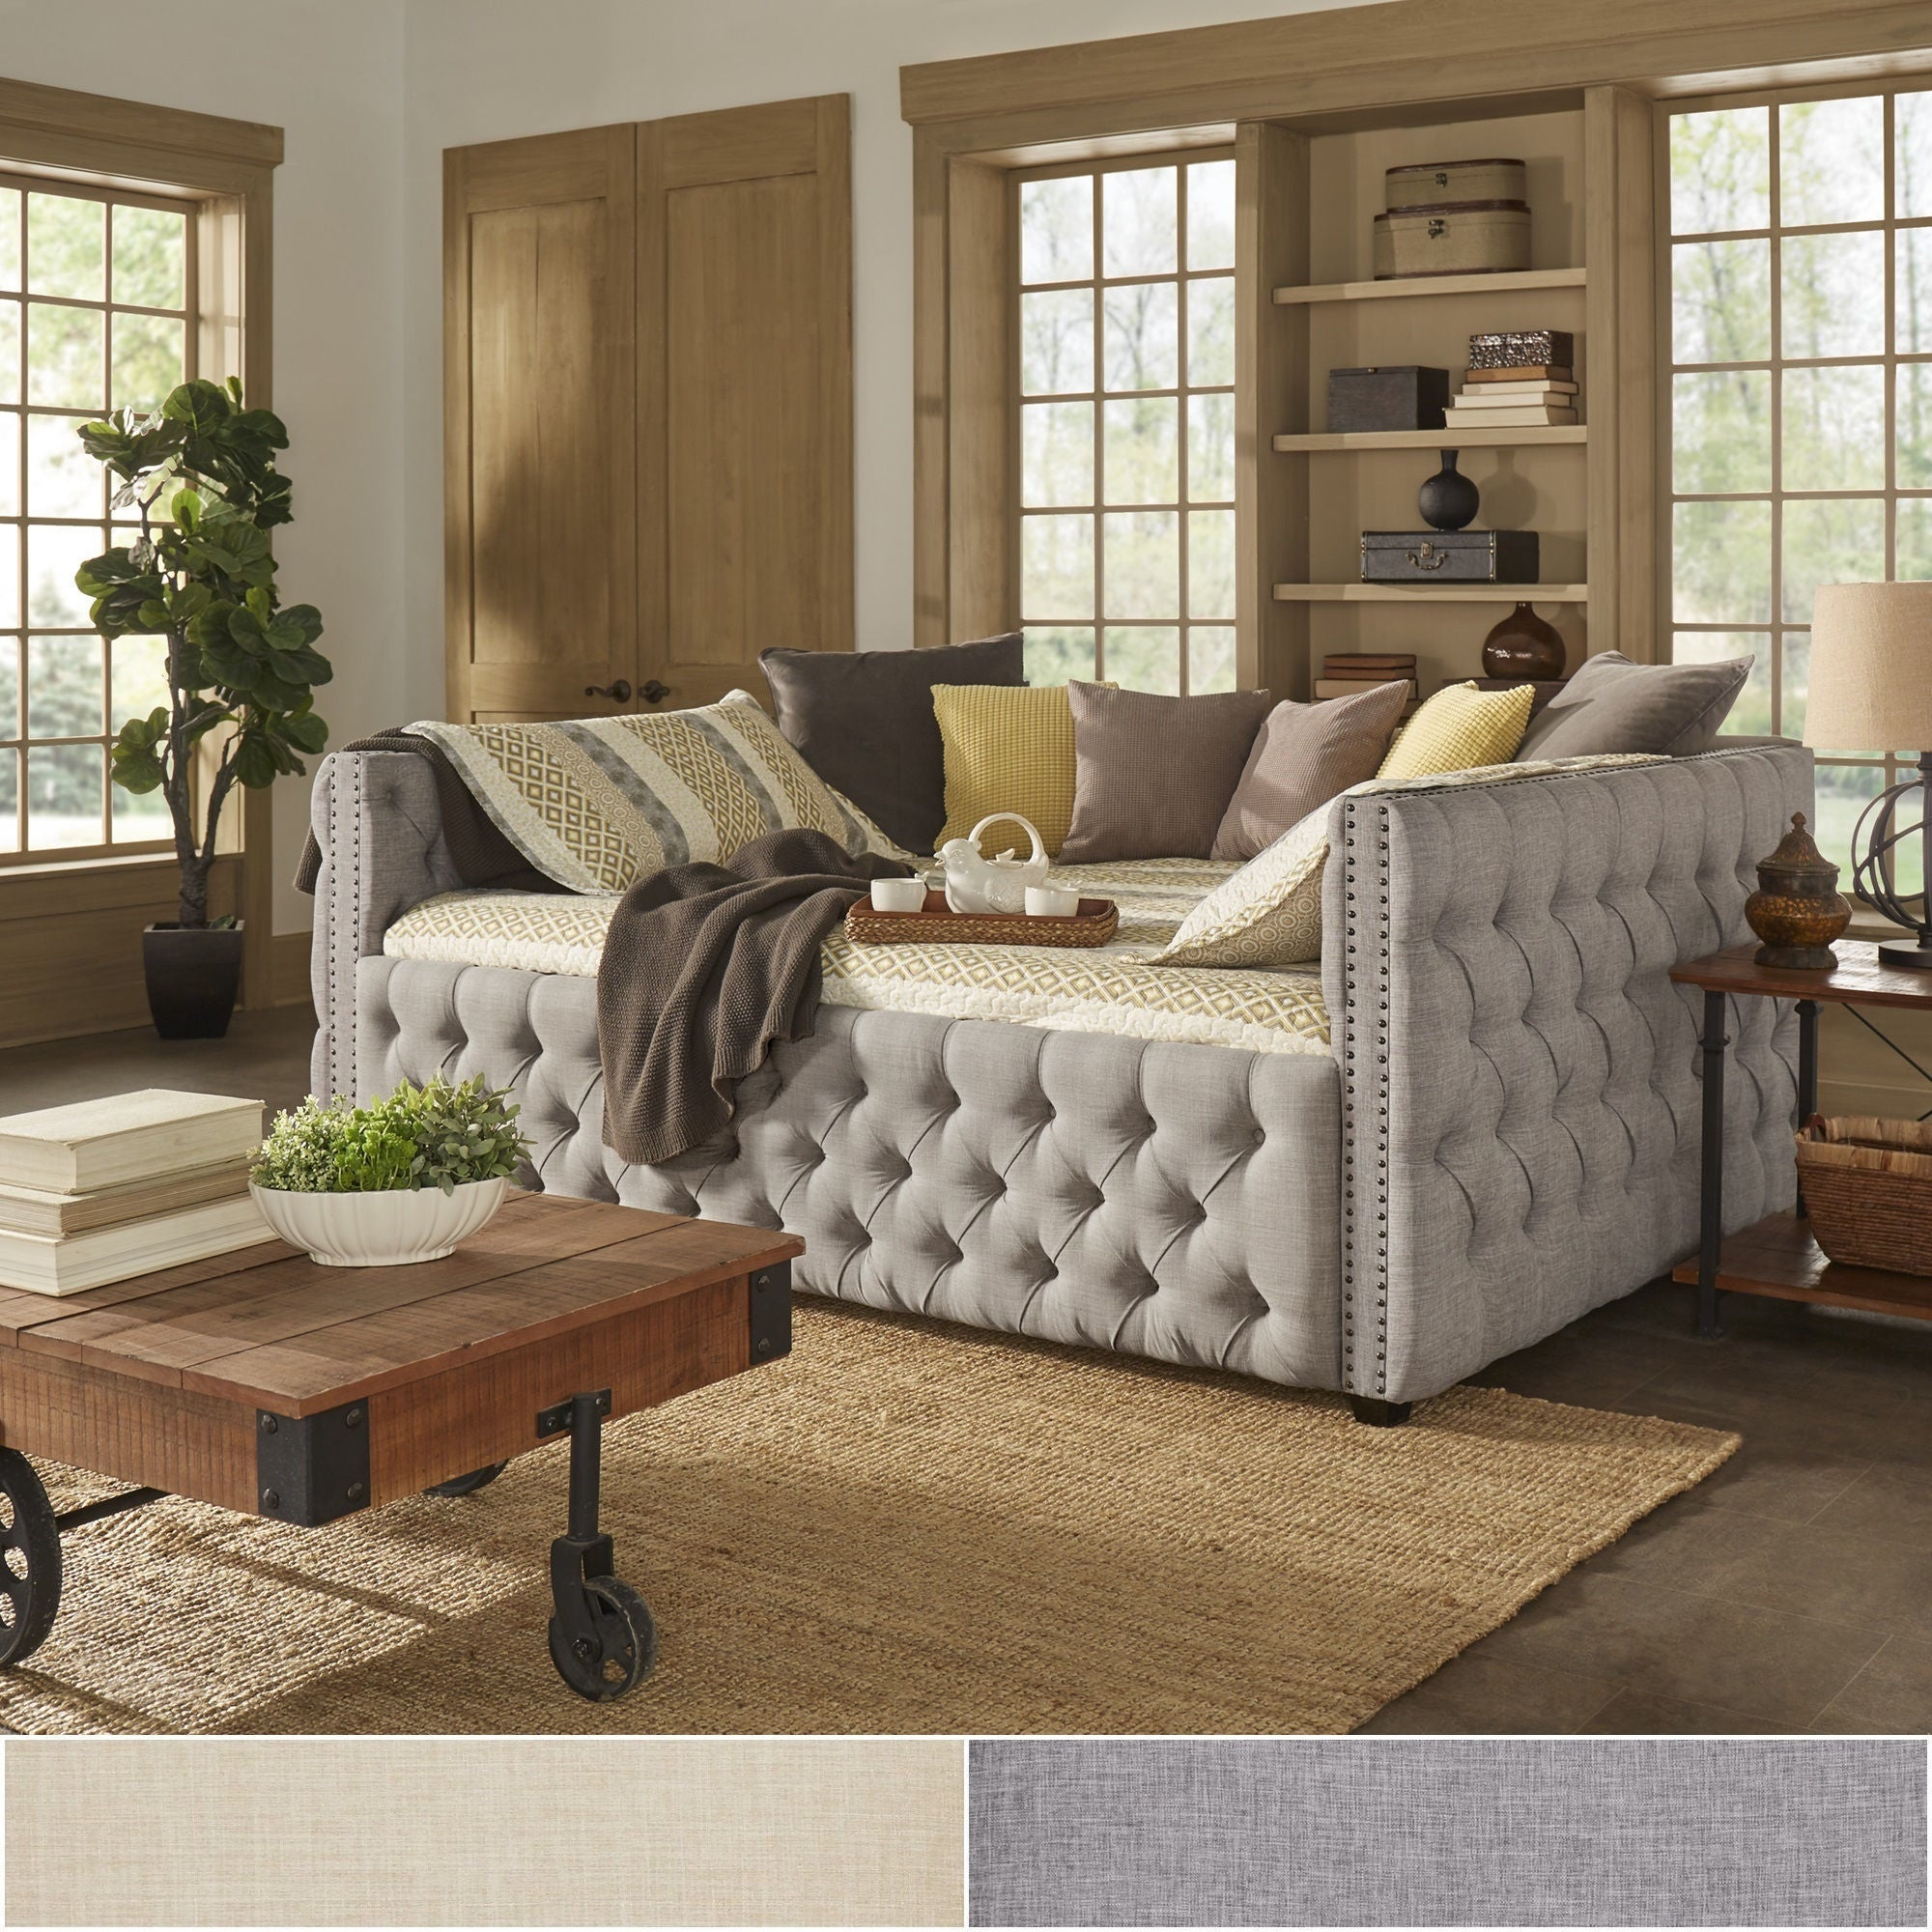 Knightsbridge Queen Size Tufted Nailhead Chesterfield Daybed And Trundle By Inspire Q Free Shipping Today 14341348